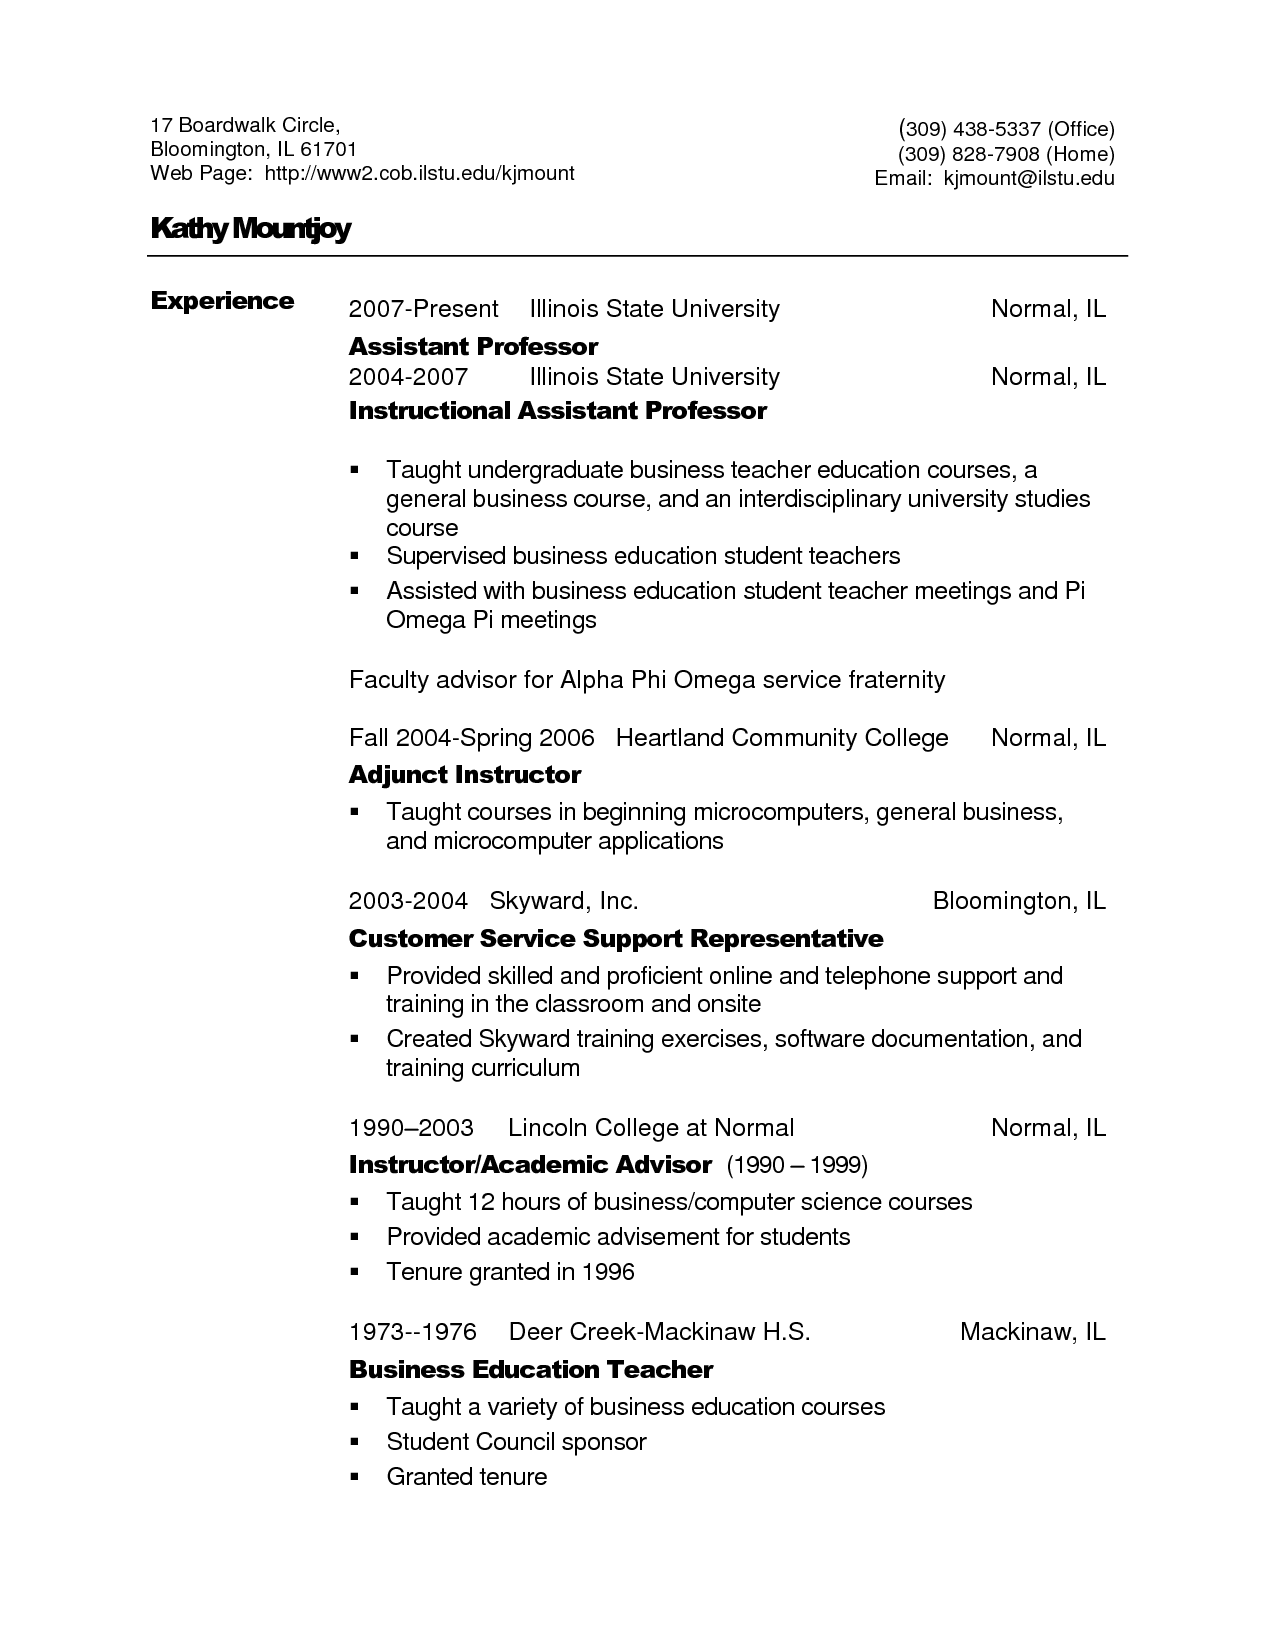 Academic Resume Template English Resume Template Seeabruzzoresume Templates Cover Letter